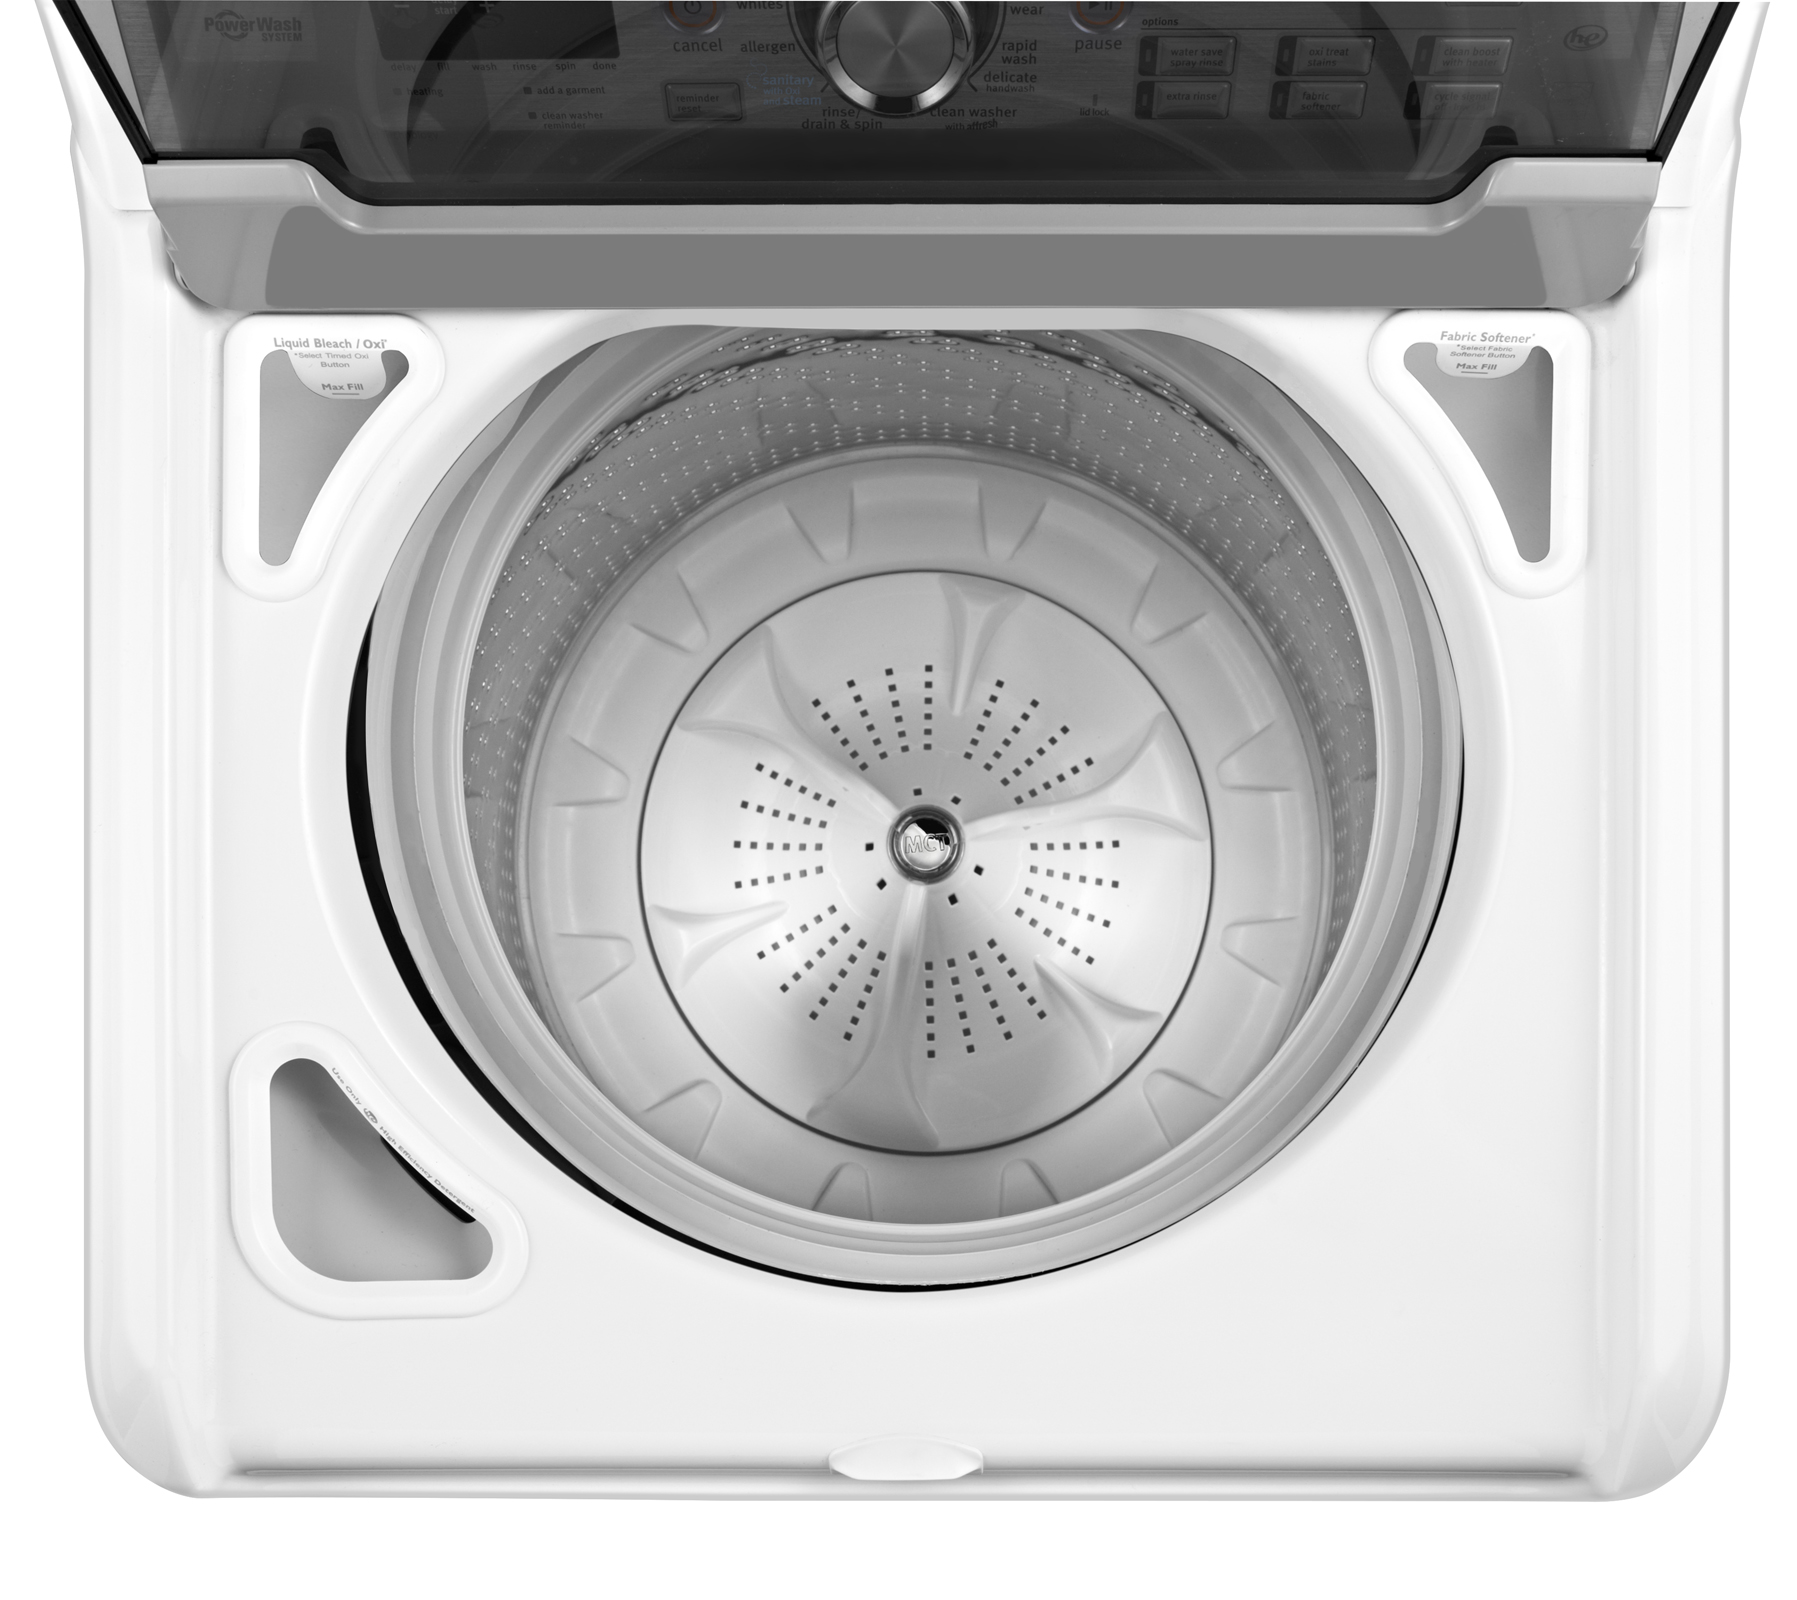 Maytag 4.8 cu. ft. Bravos XL® High-Efficiency Top-Load Washer - White